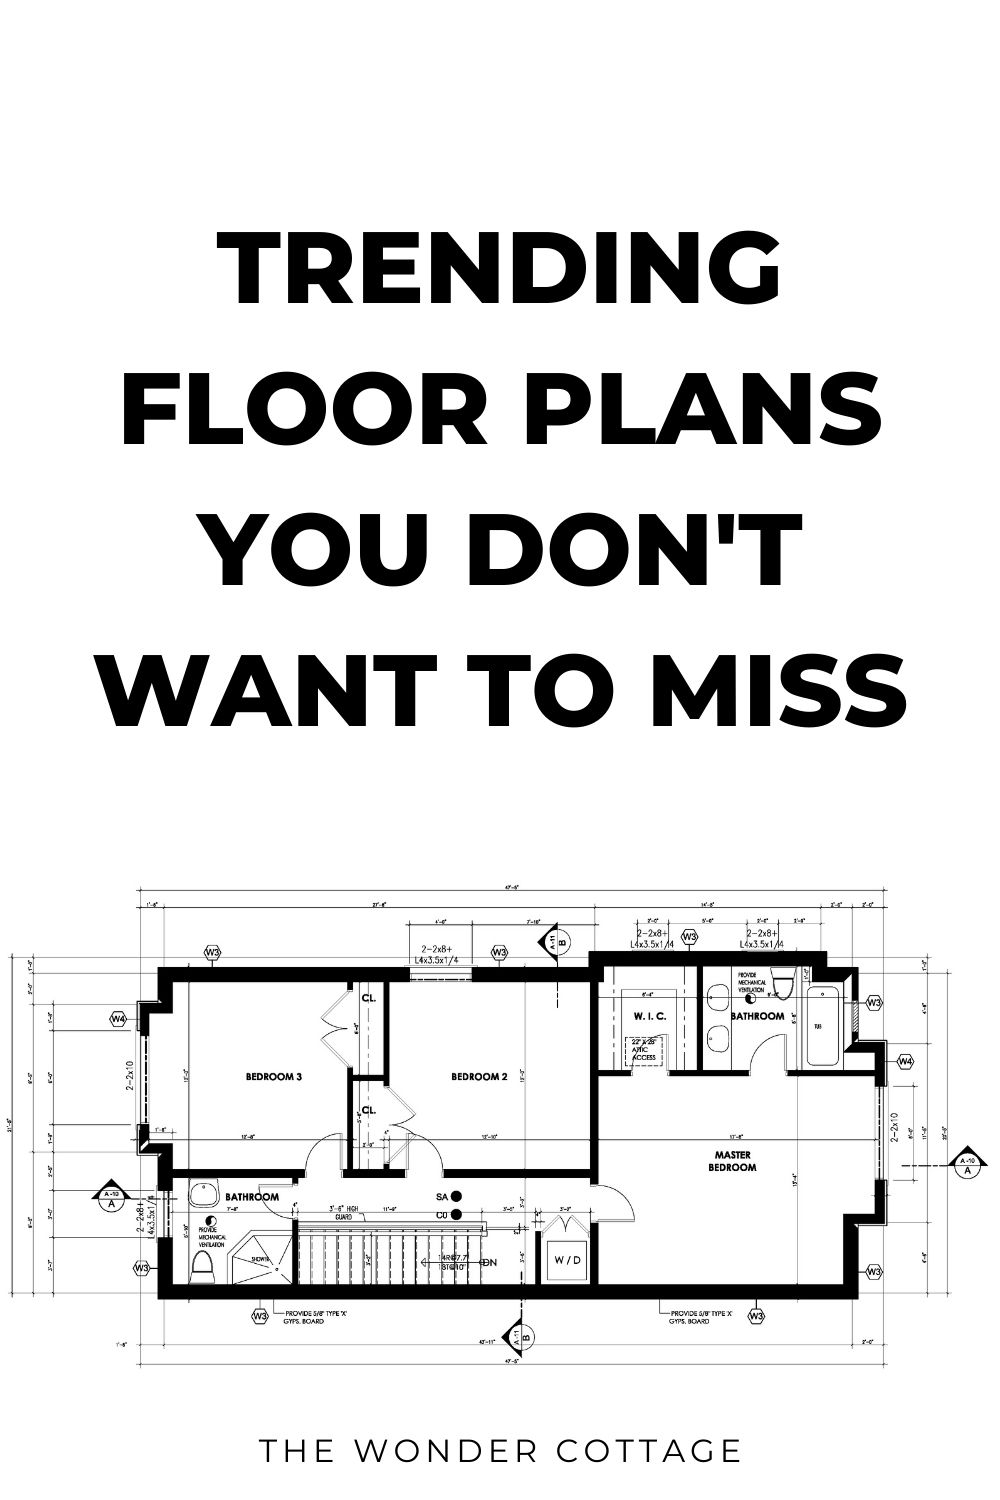 Trending floor plans you don't want to miss